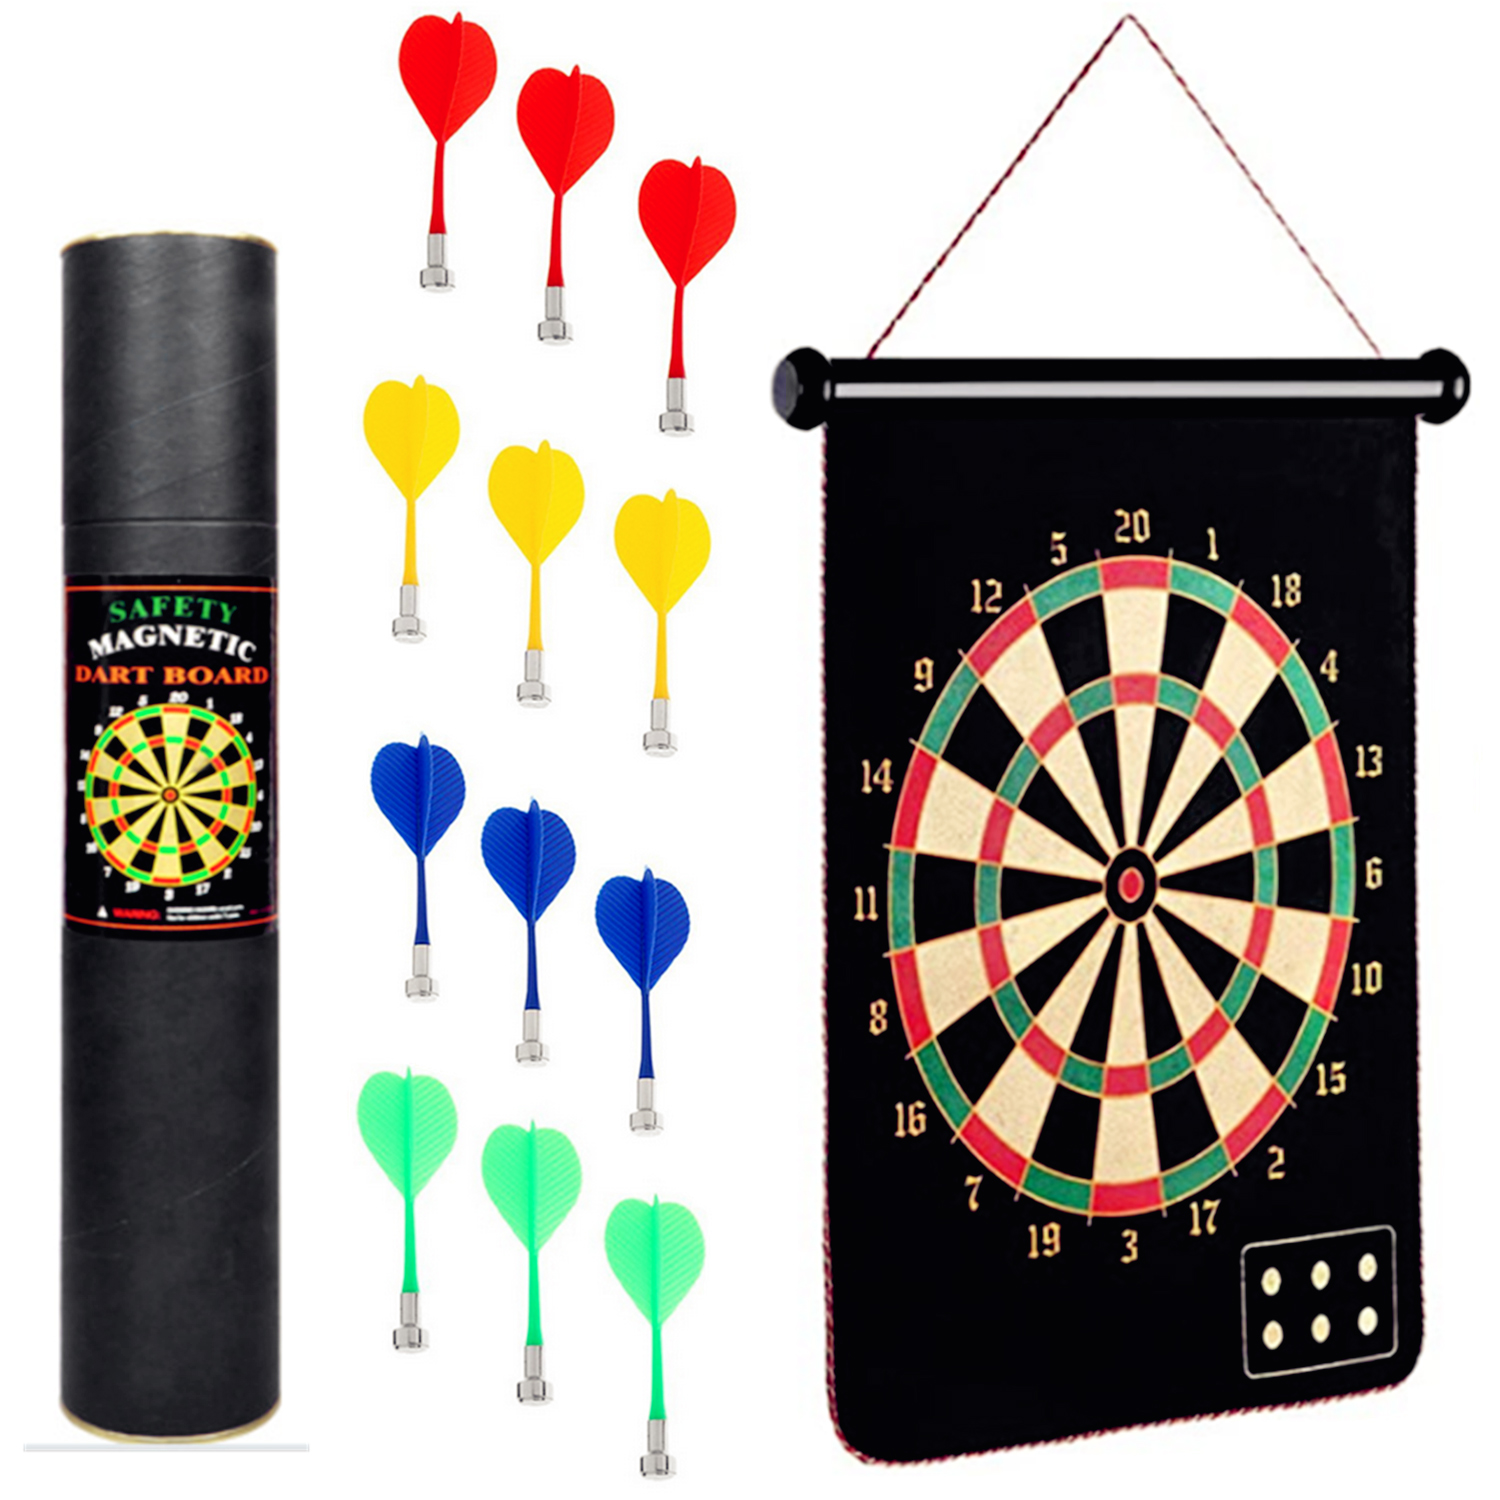 15/17 Inch Double Sided Magnetic Dart Board Dartboard Darts Suit With 12 Darts For Home Offices Dormitories Dart Game Board Toy